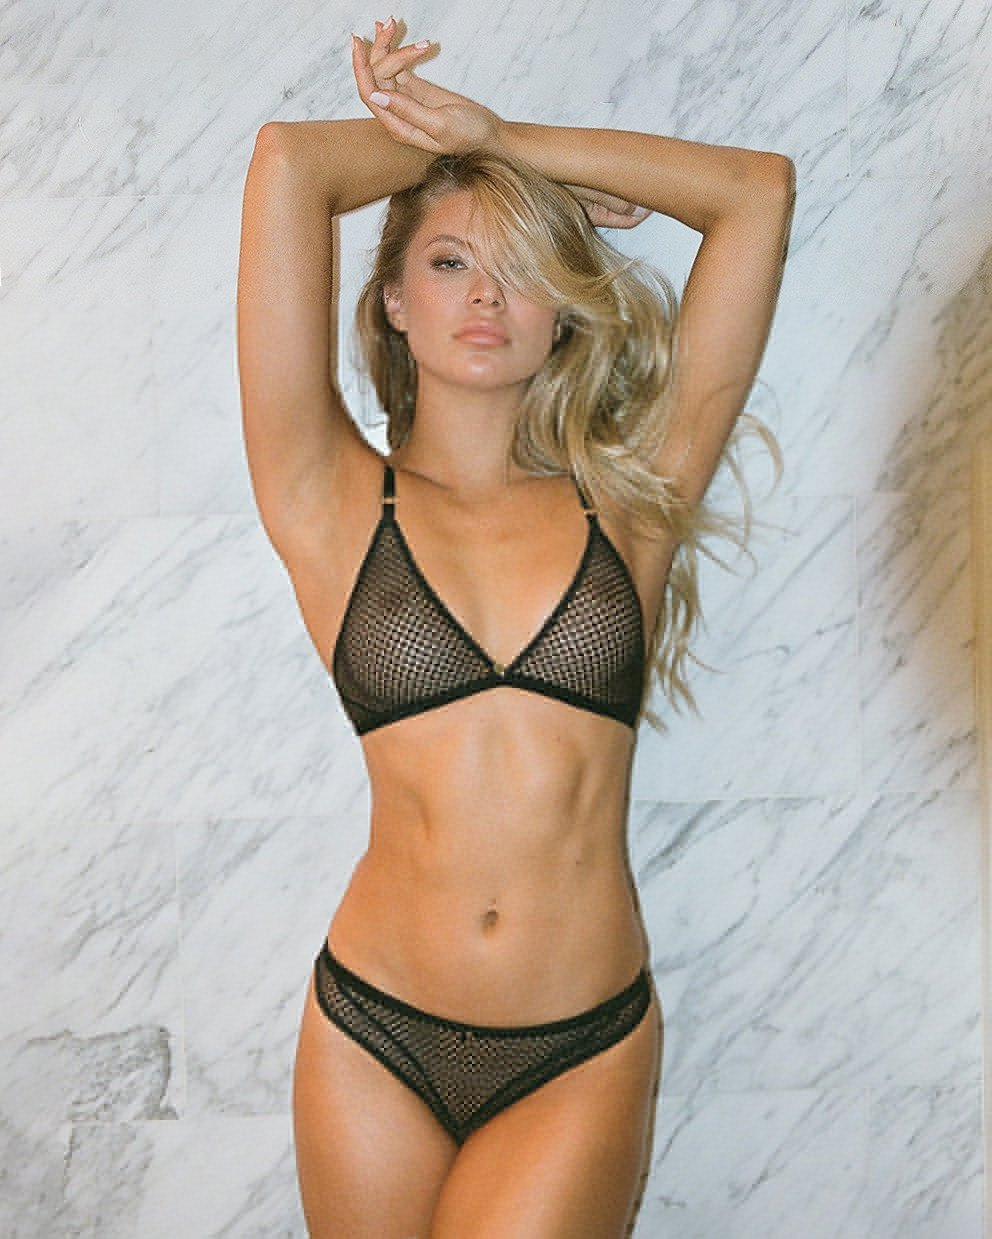 Josie Canseco Sexy Lingerie Photoshoot